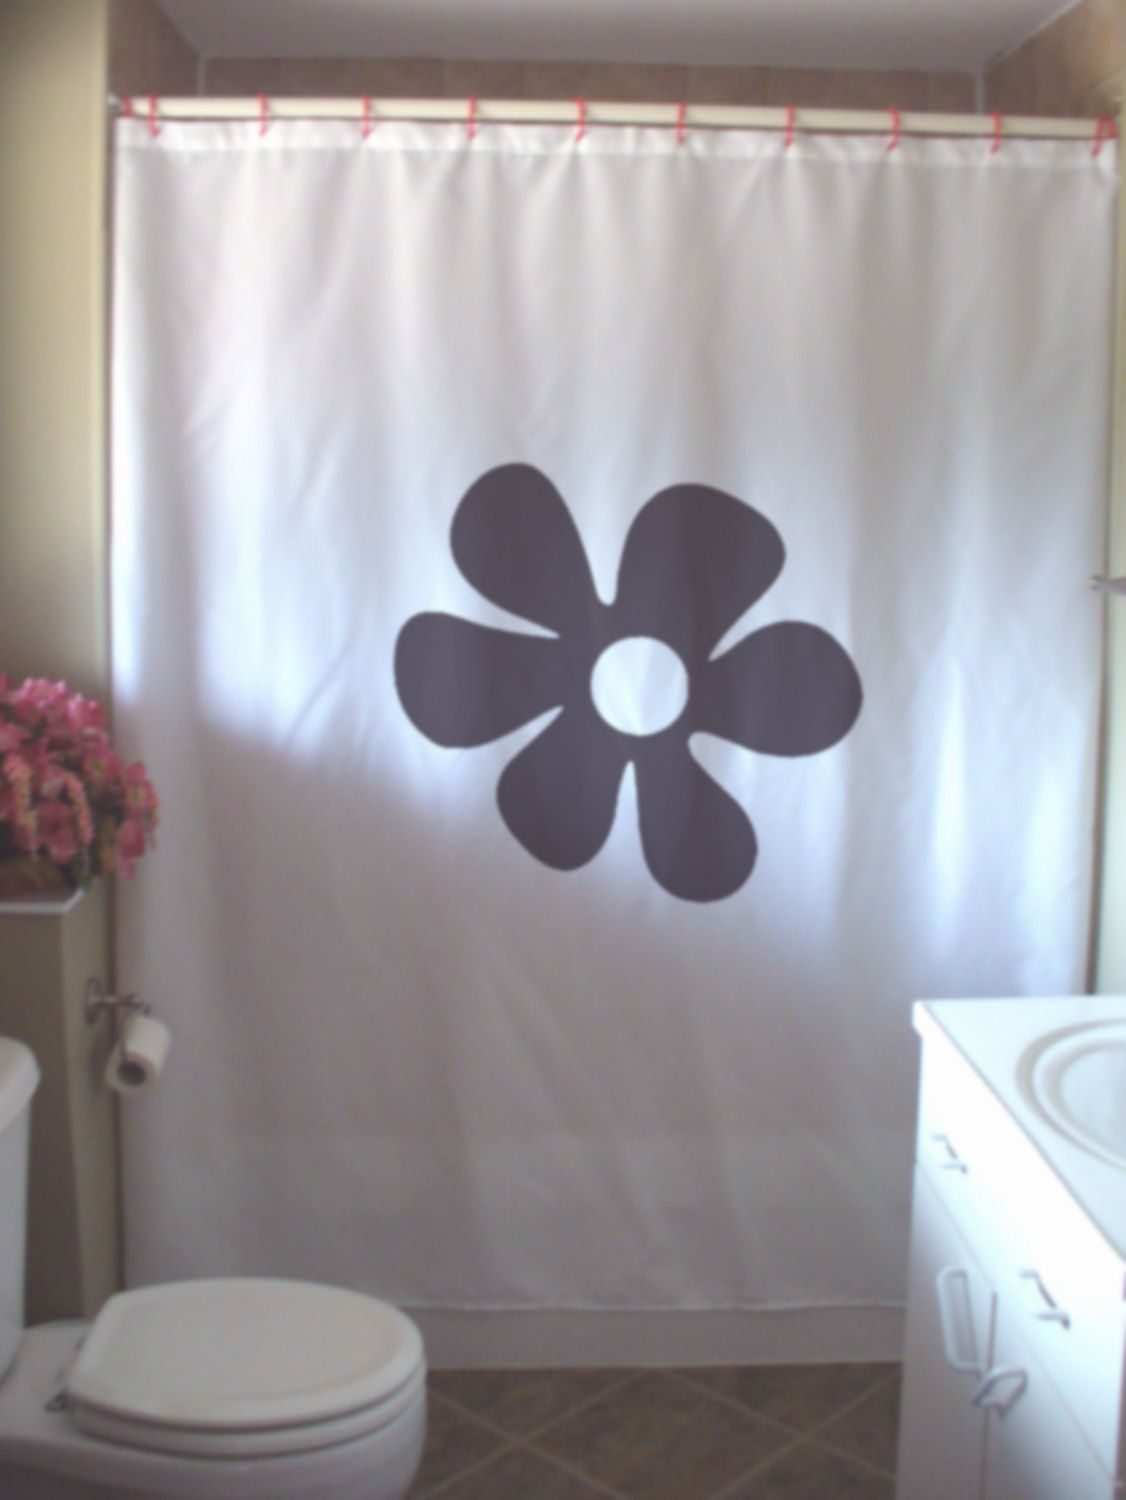 Items Similar To Flower Power Shower Curtain Hippy Sixties Style Retro Free  Love Peace Bathroom Bath Kids Curtains Custom Size Long Wide Hand Painted  On ...